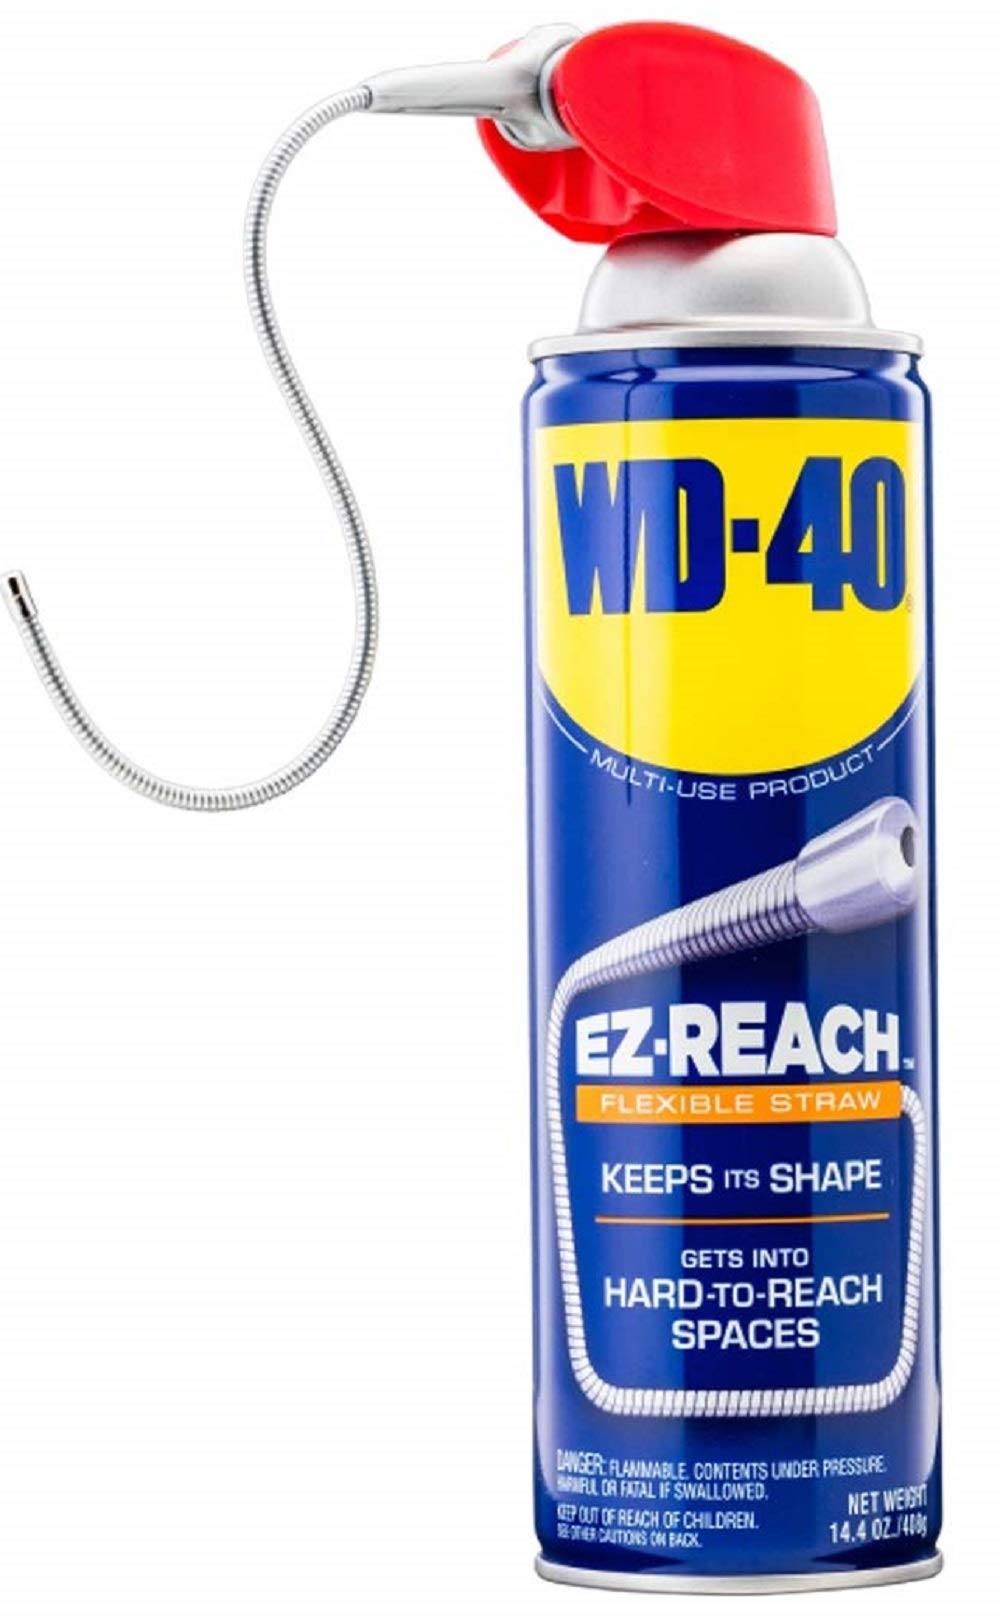 WD-40 Multi-Use Product - Multi-Purpose Lubricant with EZ-REACH Flexible Straw. 14.4 oz. (6 Pack)